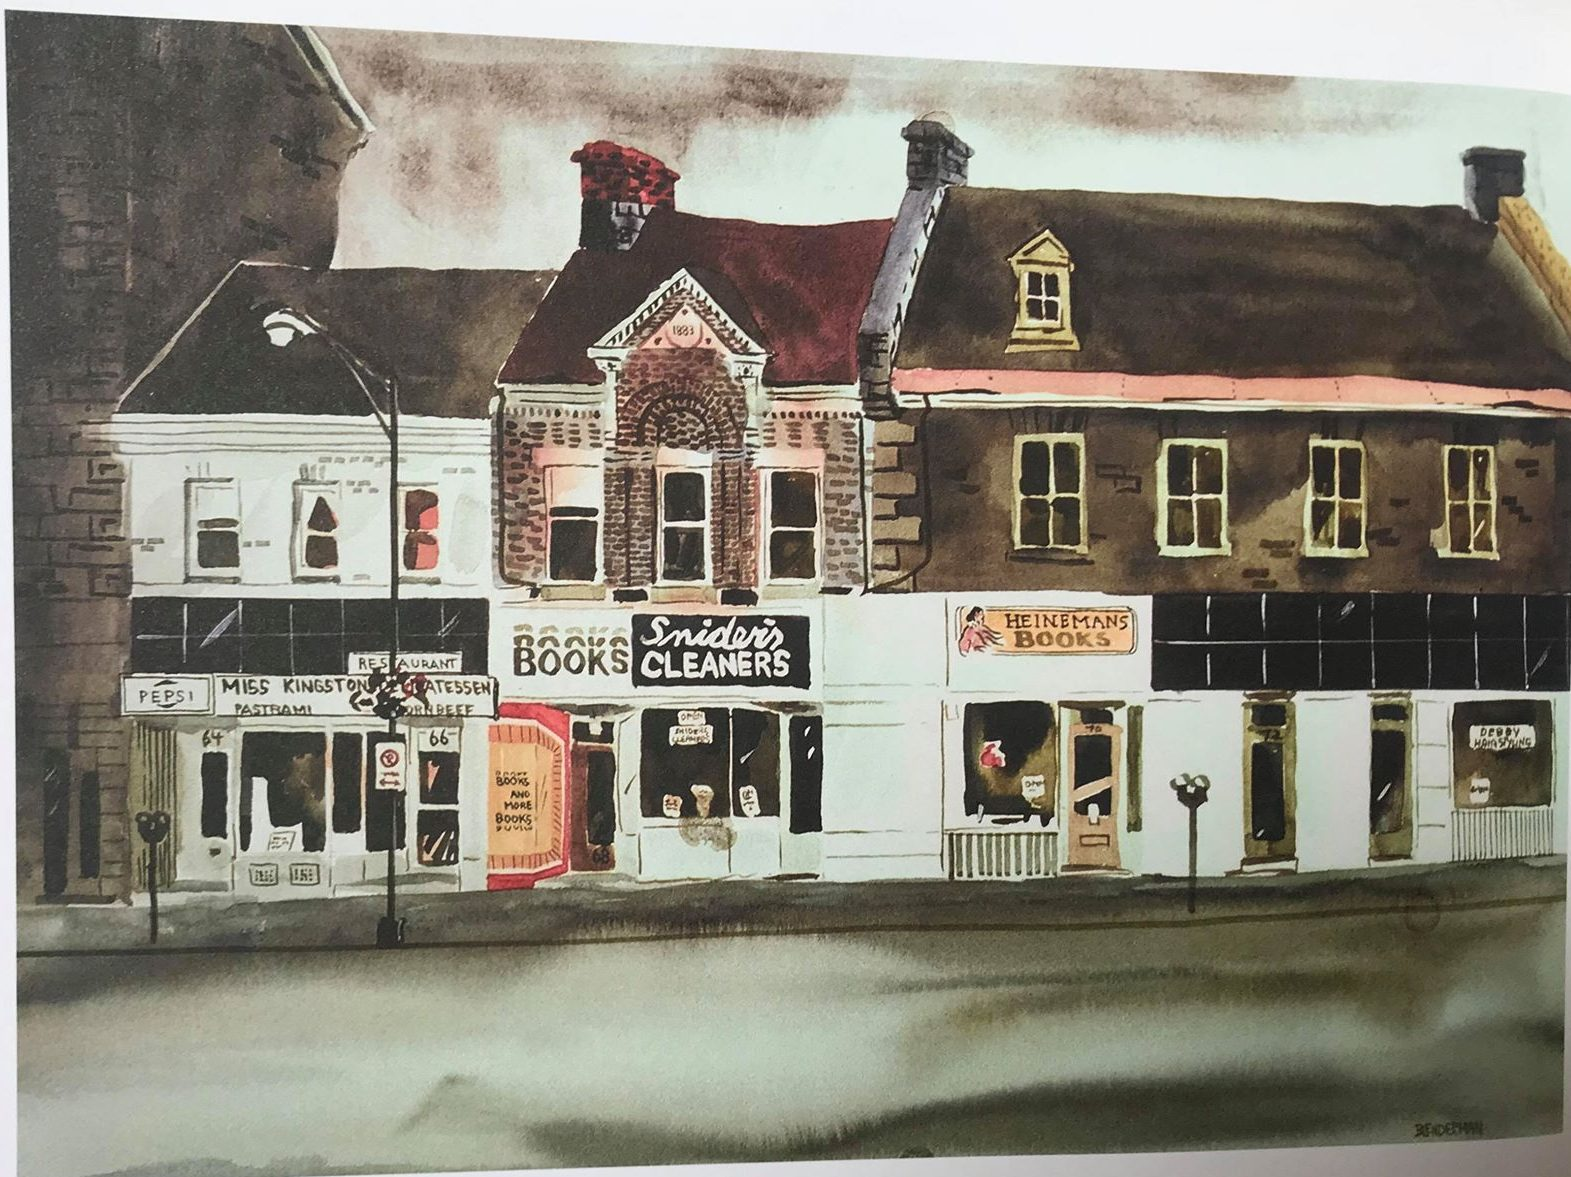 A painting containing a depiction of the Ms Kingston Delicatessen, painted by © Robert A. Blenderman